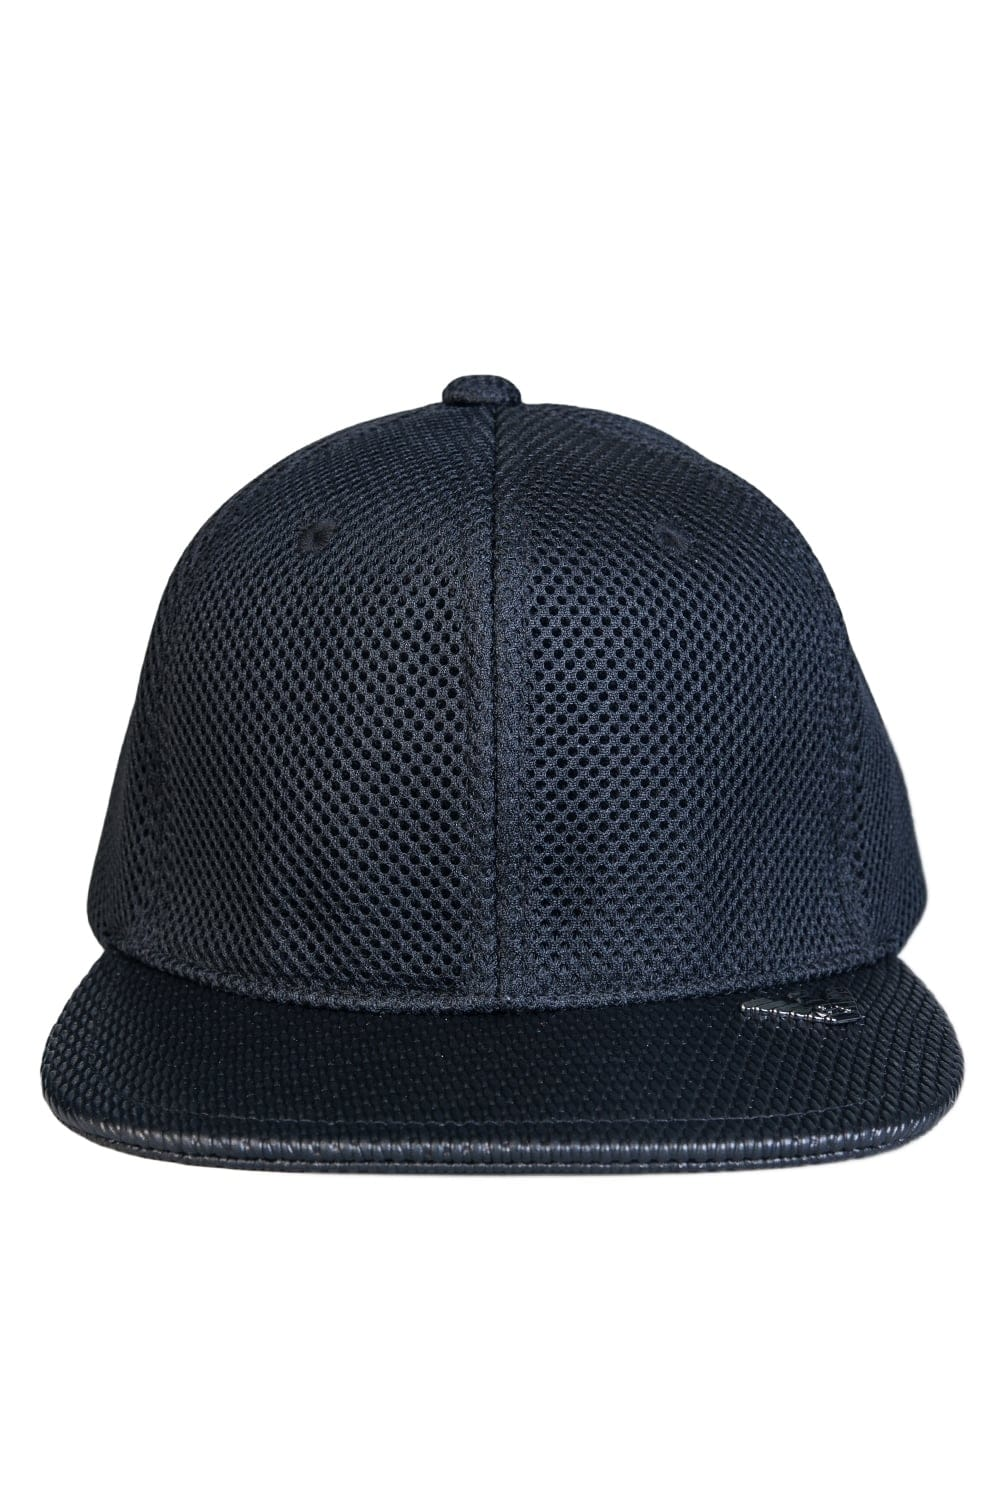 7fd595e2 Armani Jeans Baseball Cap 934067 7P722 - Accessories from Sage Clothing UK